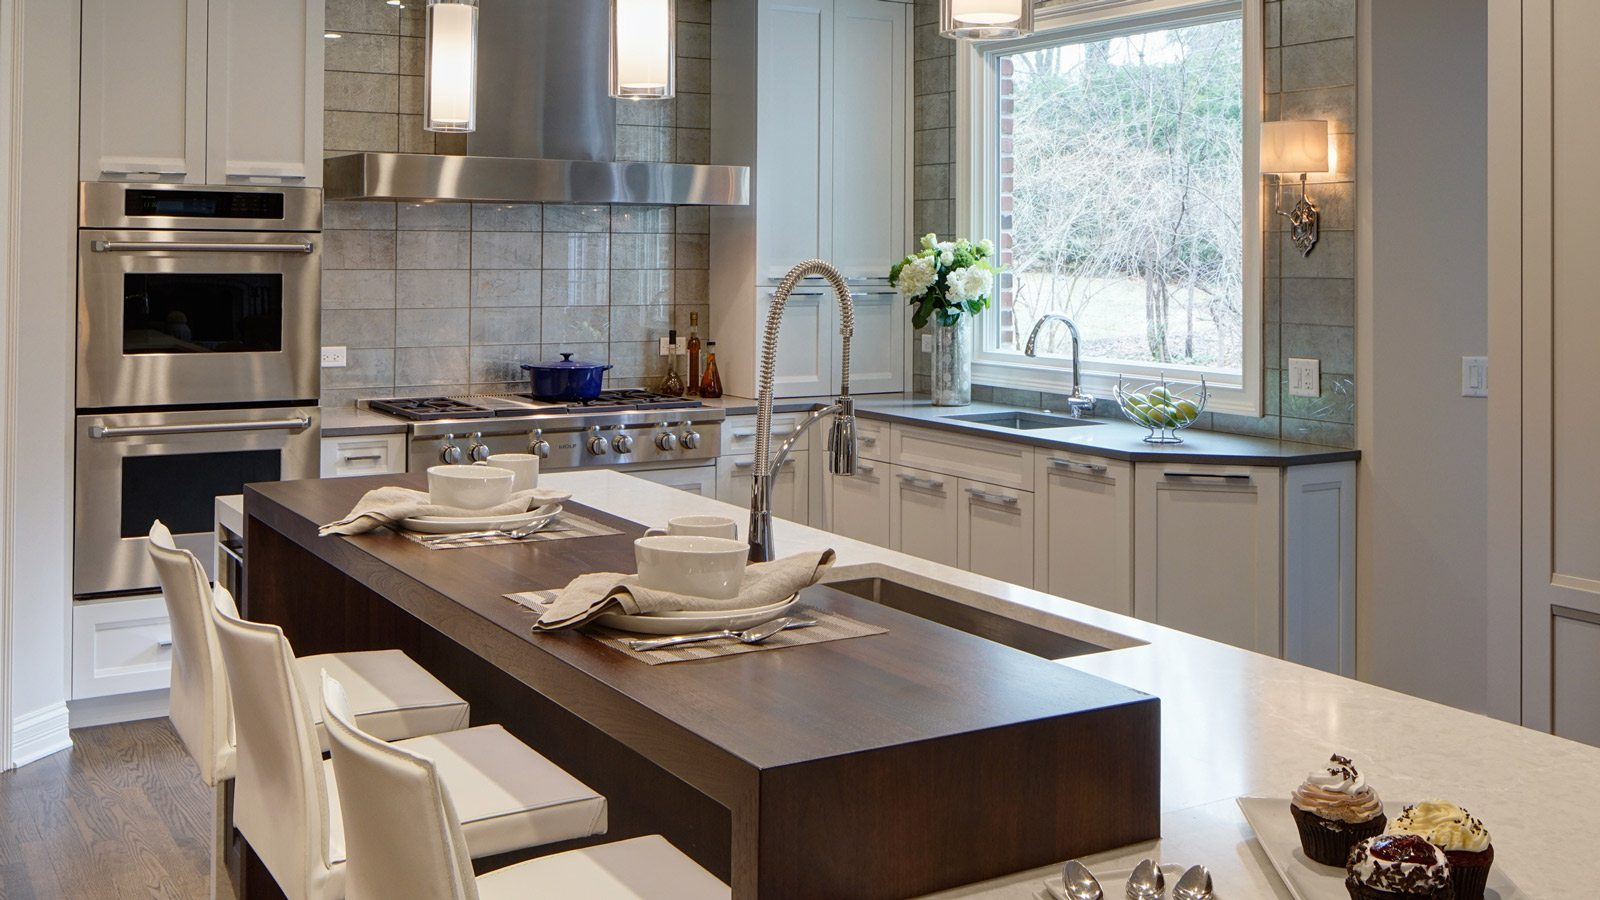 Remodel Designer Contemporary Suburban Kitchen Remodel Drury Design